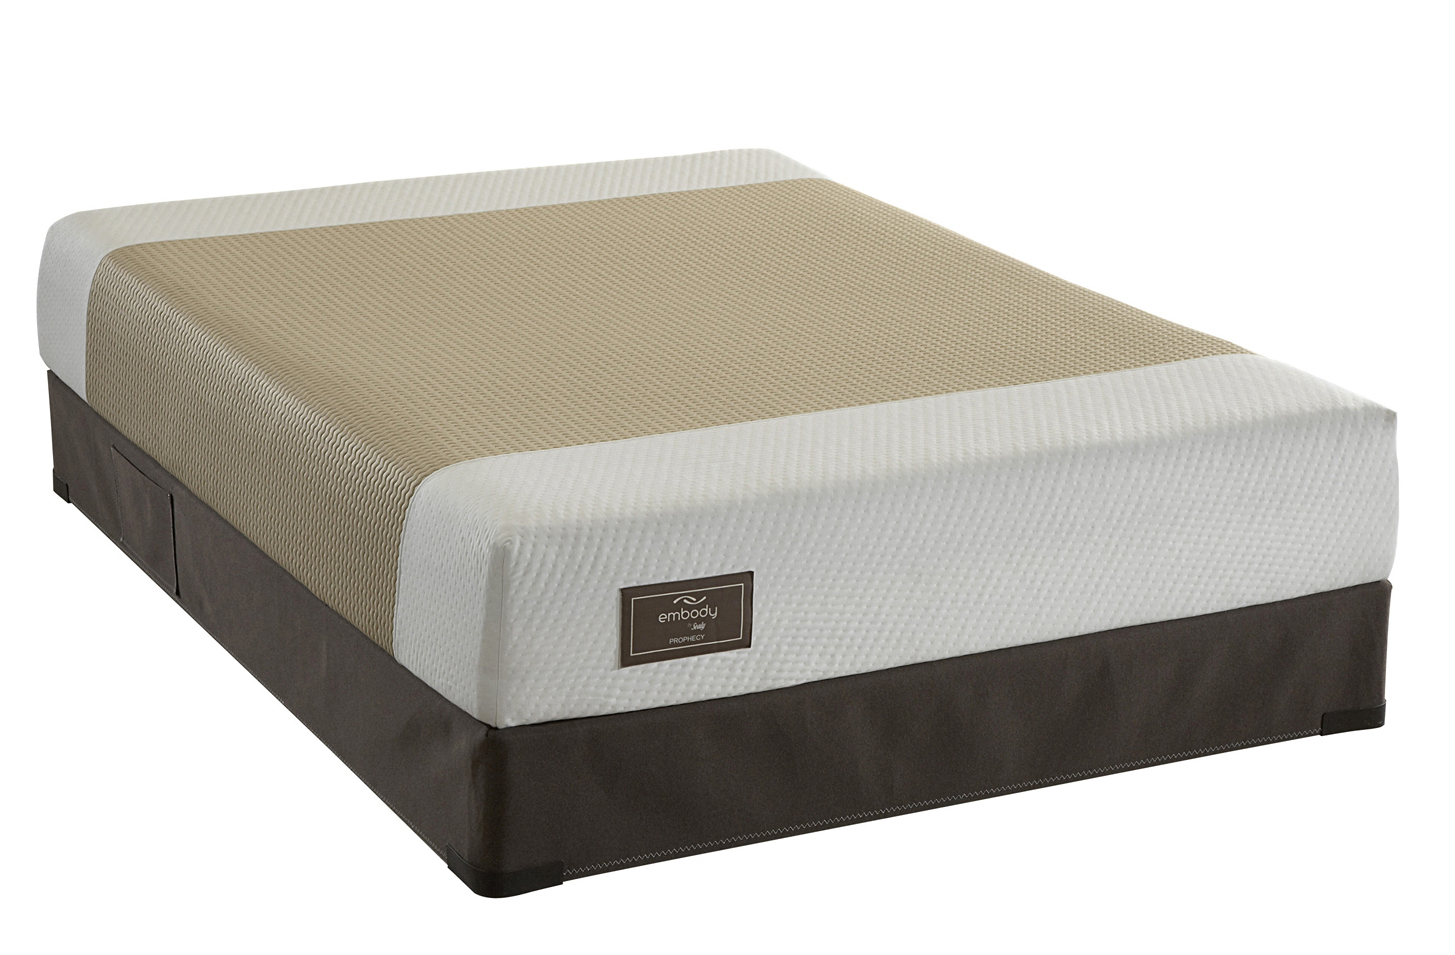 Adjustable Beds Reviews >> Embody by Sealy - Prophecy Memory Foam Mattress